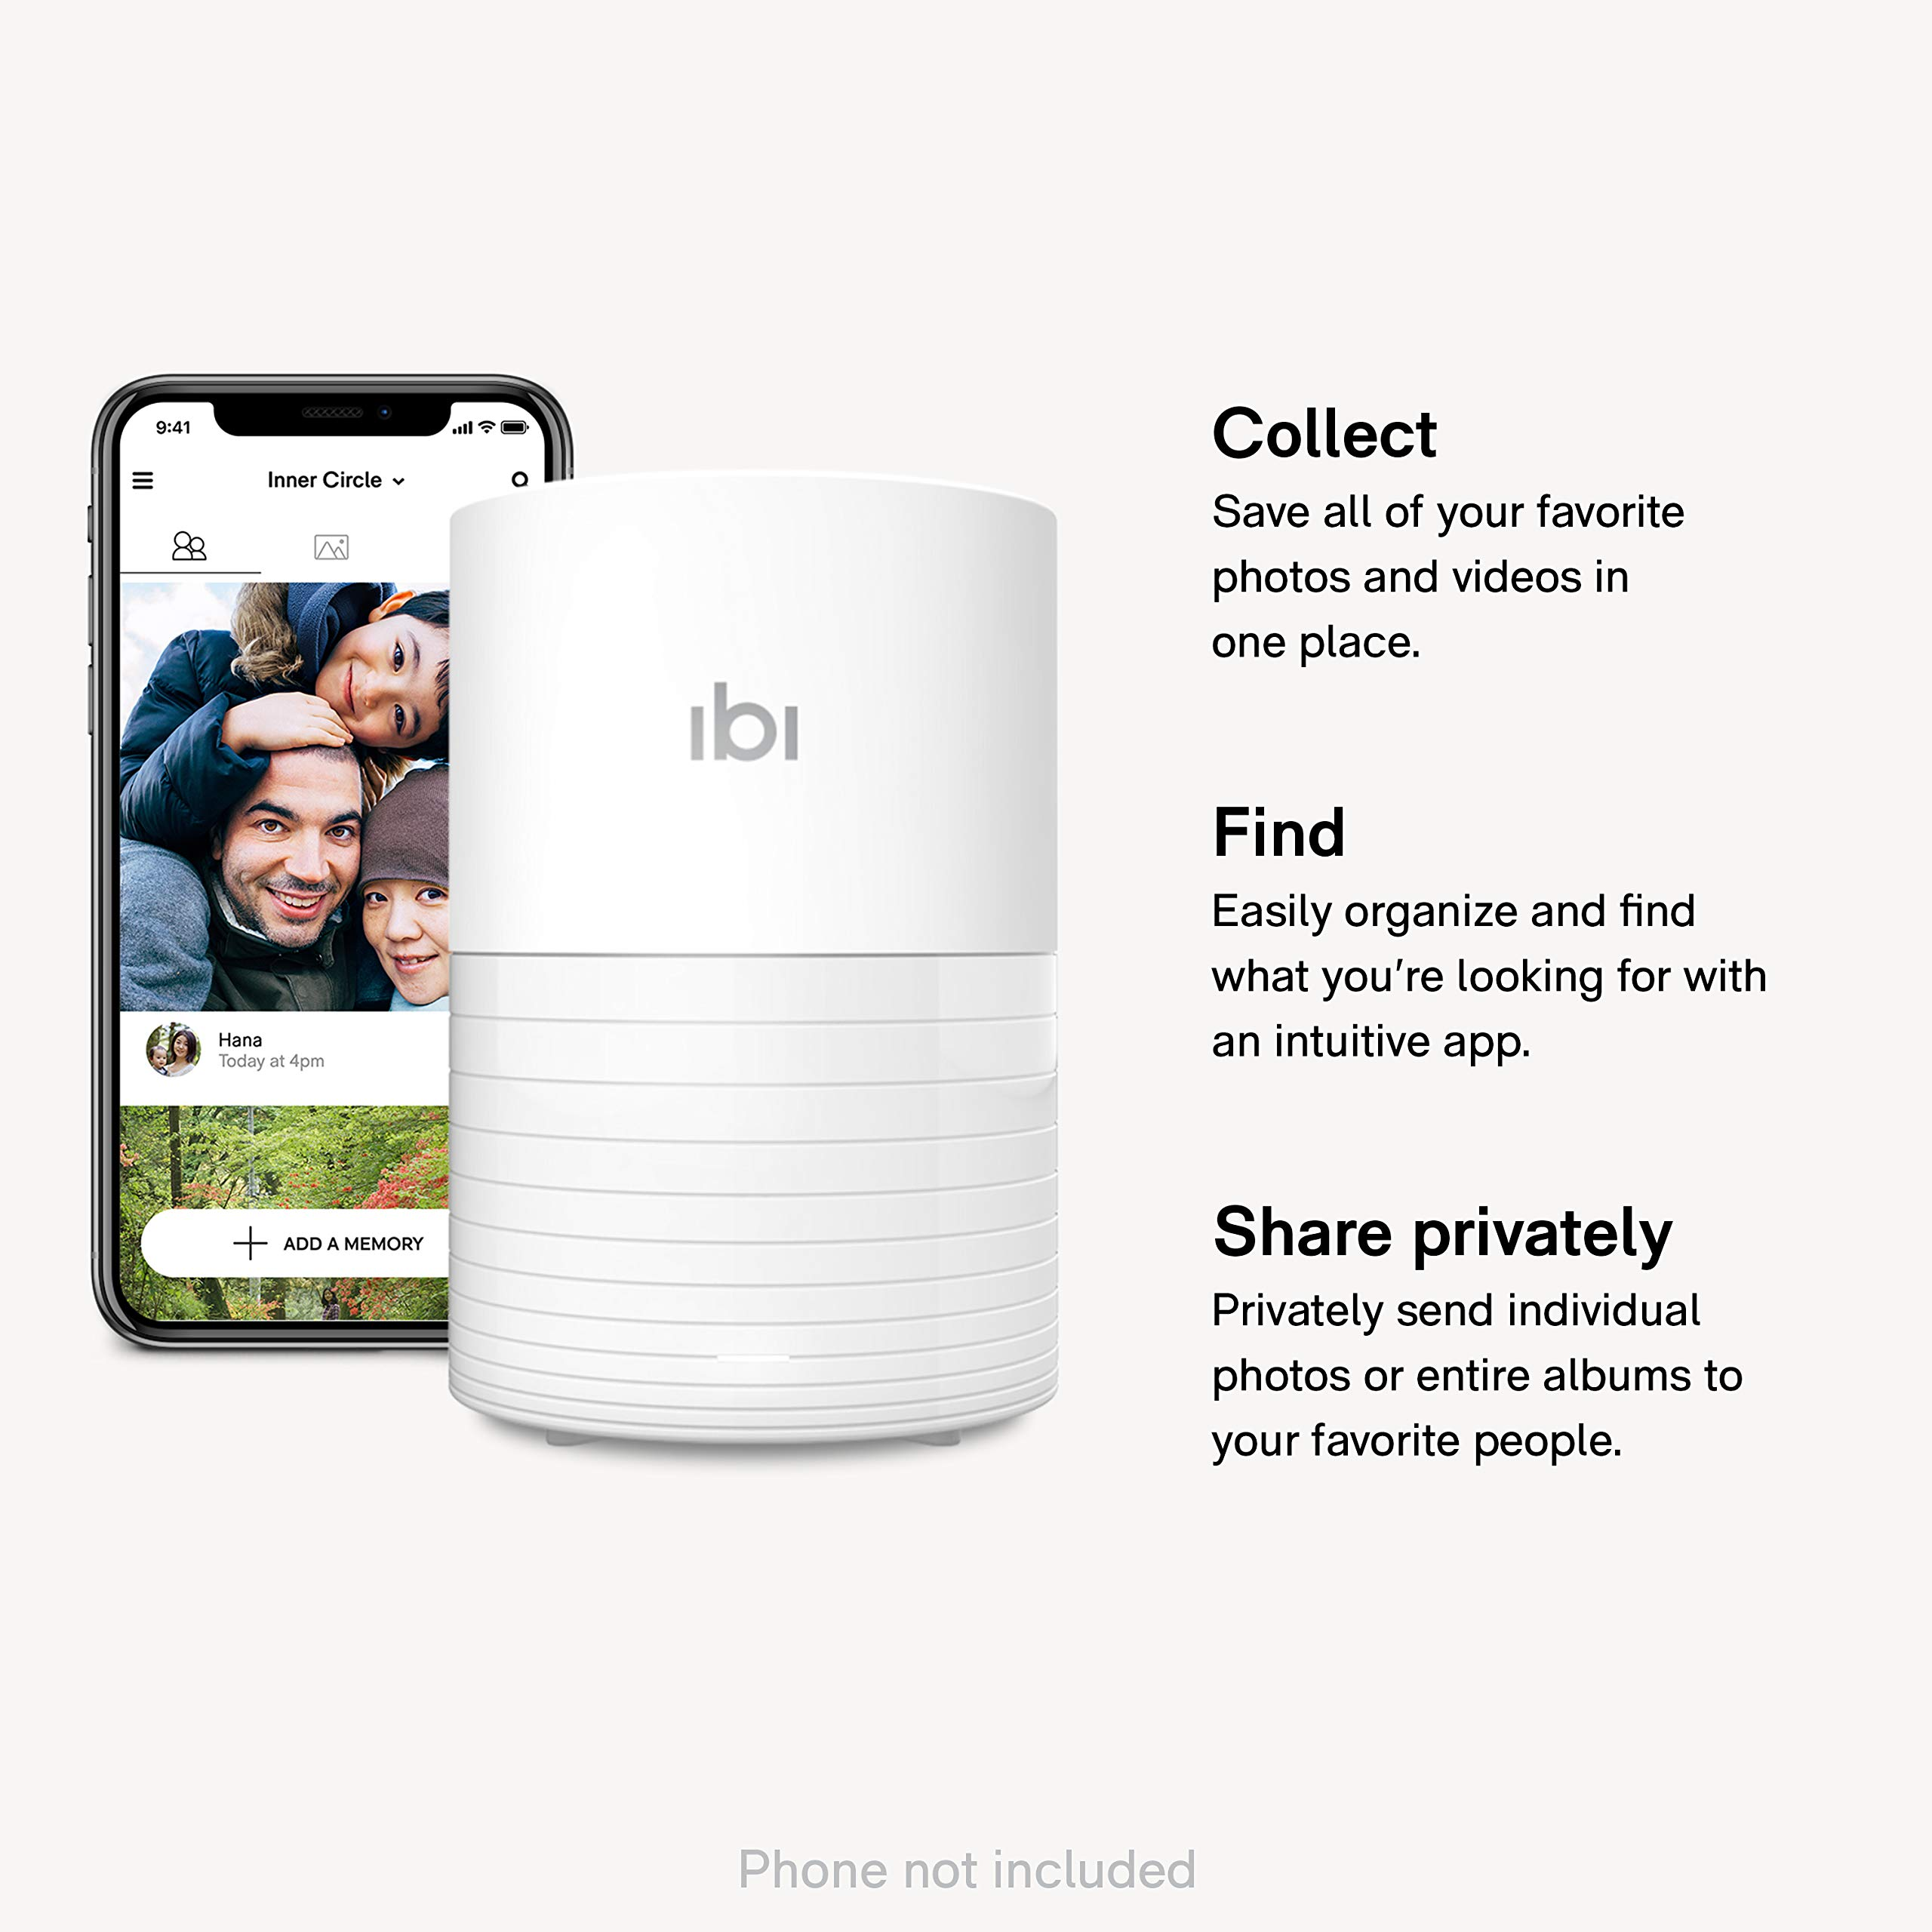 ibi - The smart photo manager - Collect, Organize and Privately Share Photos & Videos with your Favorite People - US Version by SanDisk (Image #2)